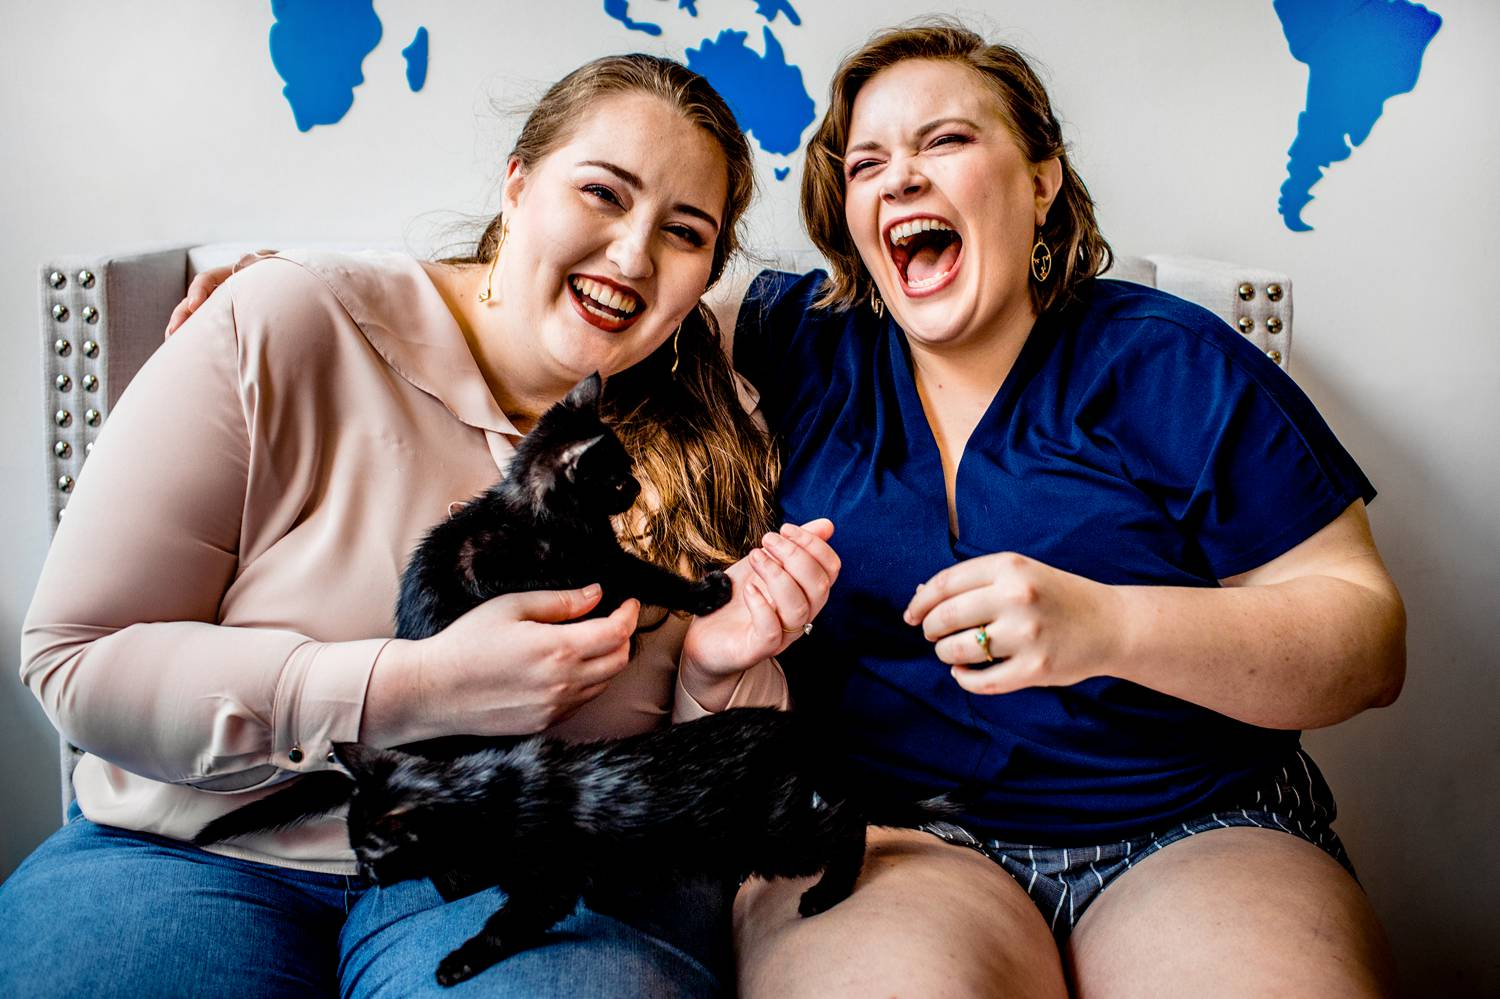 Two engaged women sit in a cat cafe and laugh as tiny kittens swarm them